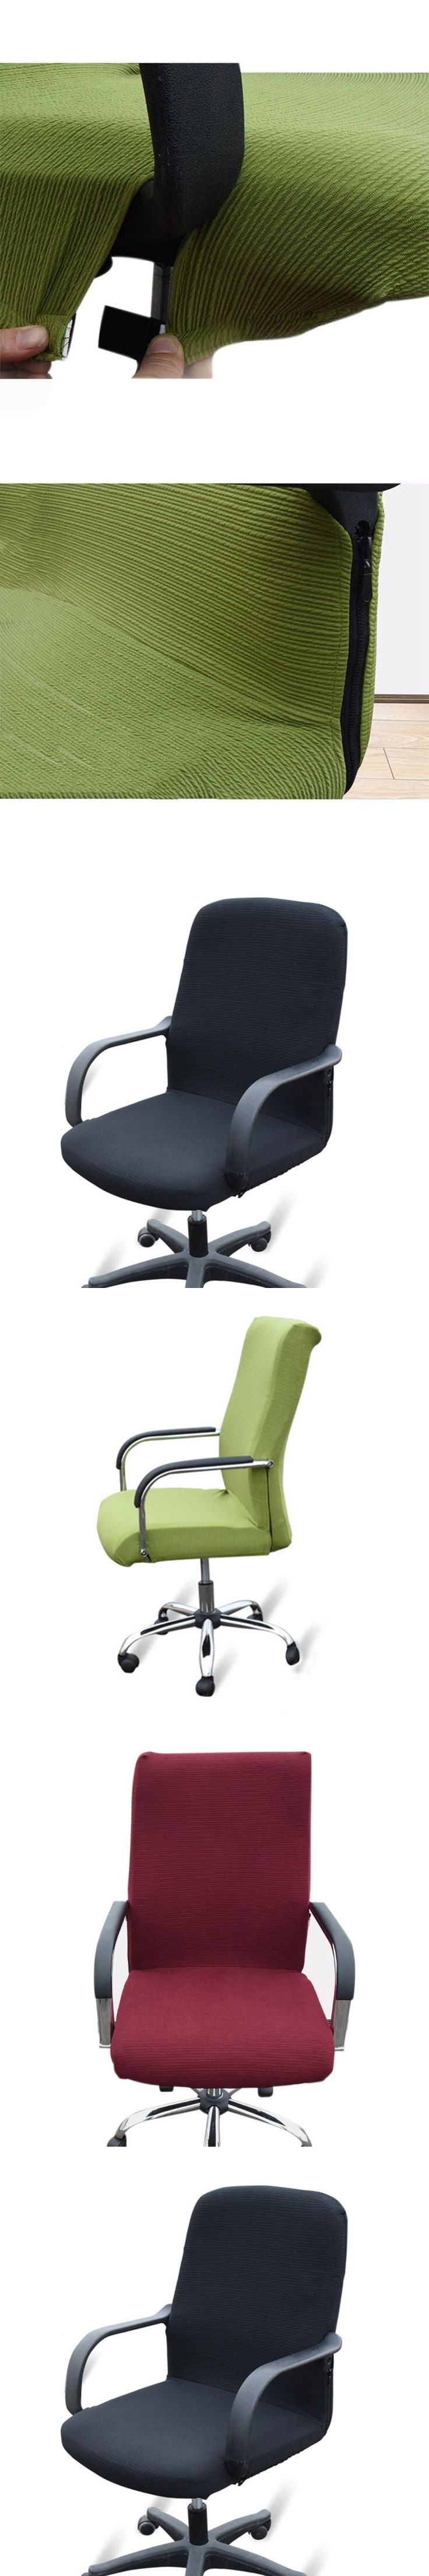 Hot Sale Computer Office Chair Cover Side Zipper Arm Chair Cover Slipcover Stretch Rotating Lift Chair Covers